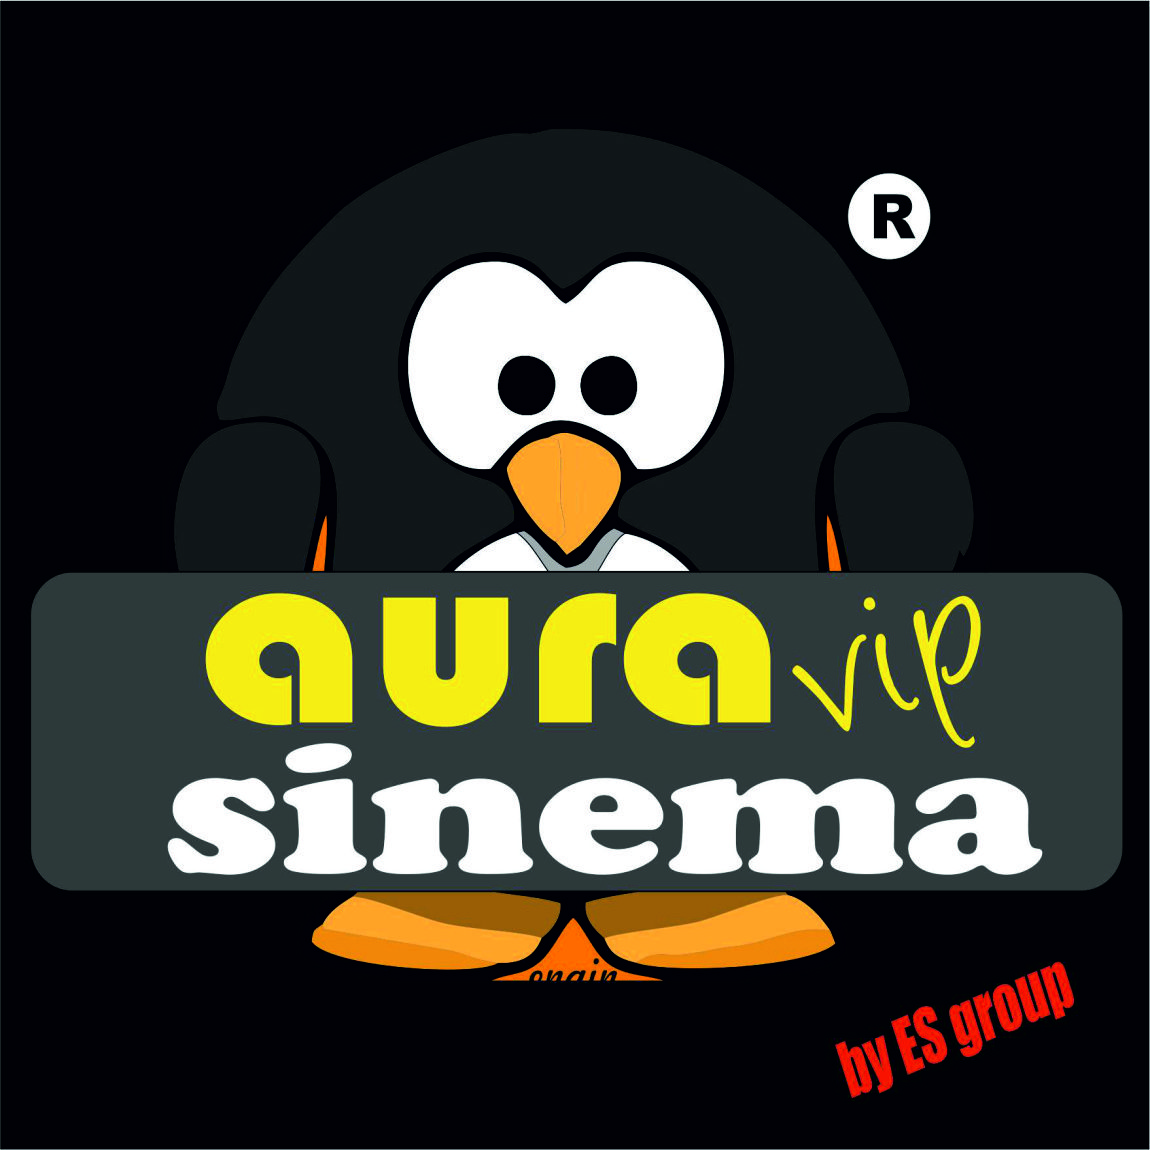 AURA VIP SINEMA CAFE